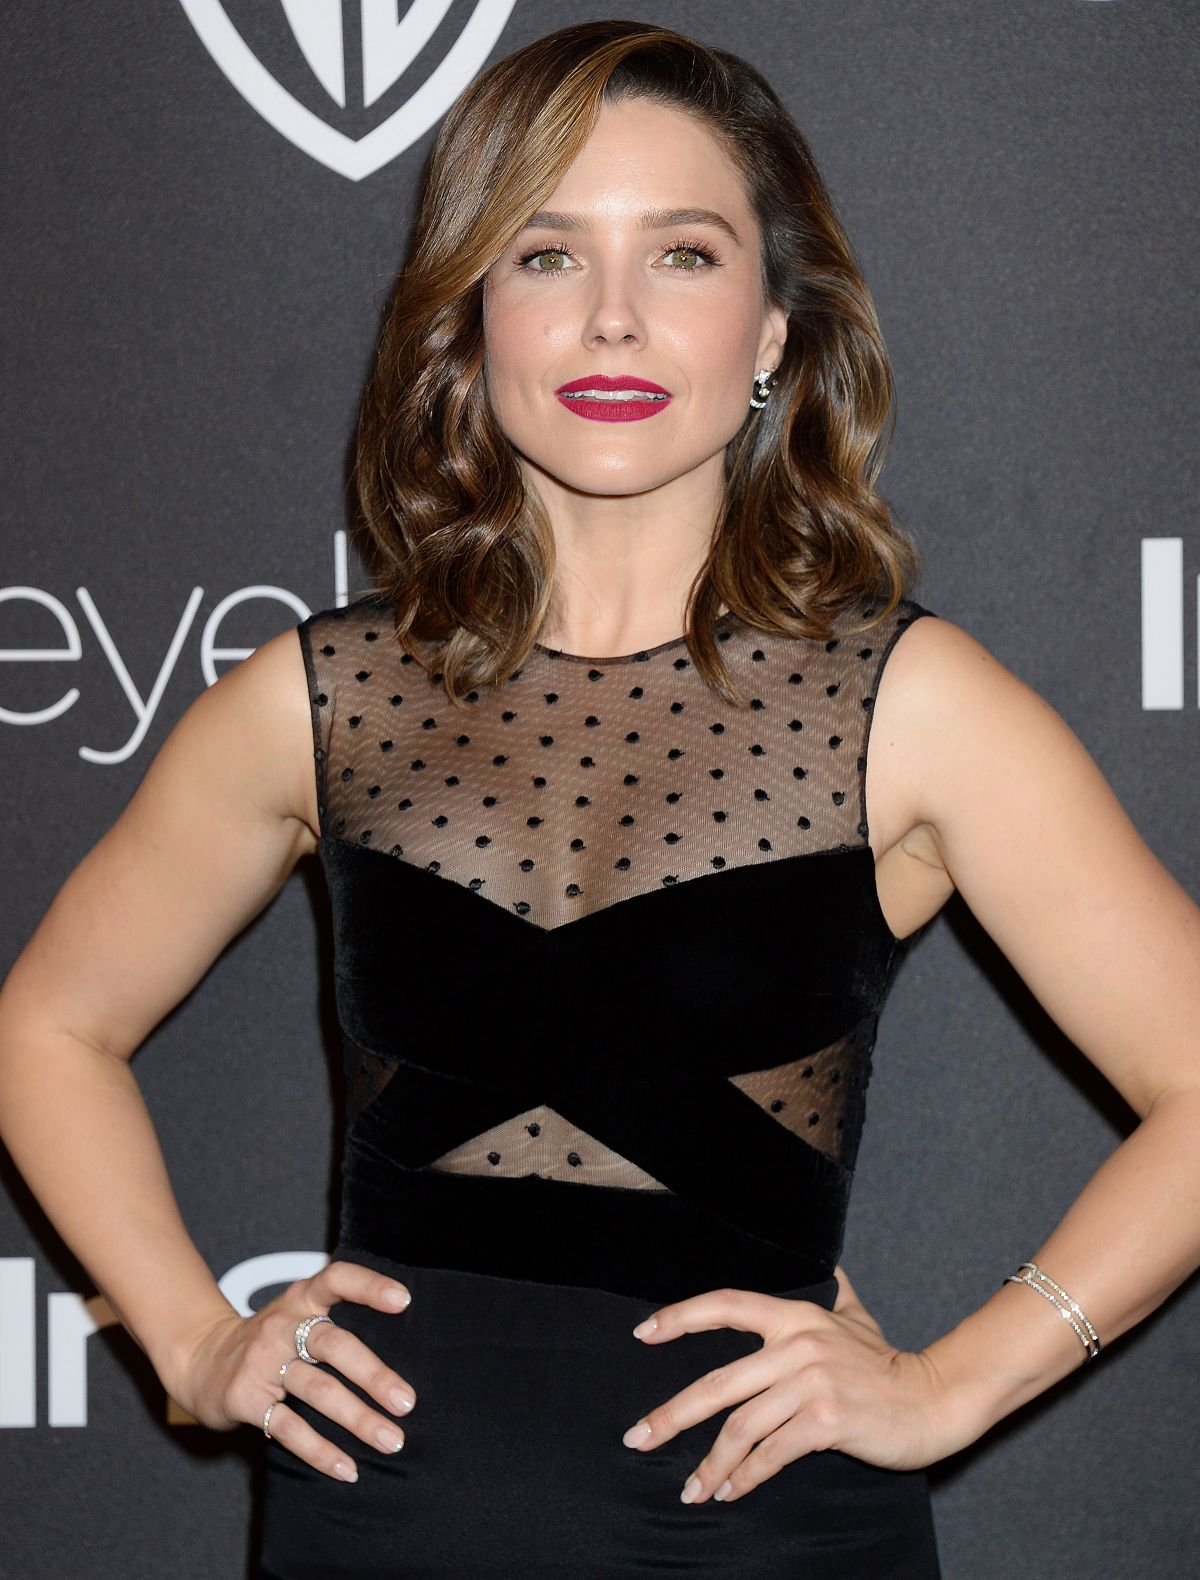 SOPHIA BUSH at Warner Bros. Pictures & Instyle's 18th Annual Golden Globes Party in Beverly Hills 01/08/2017